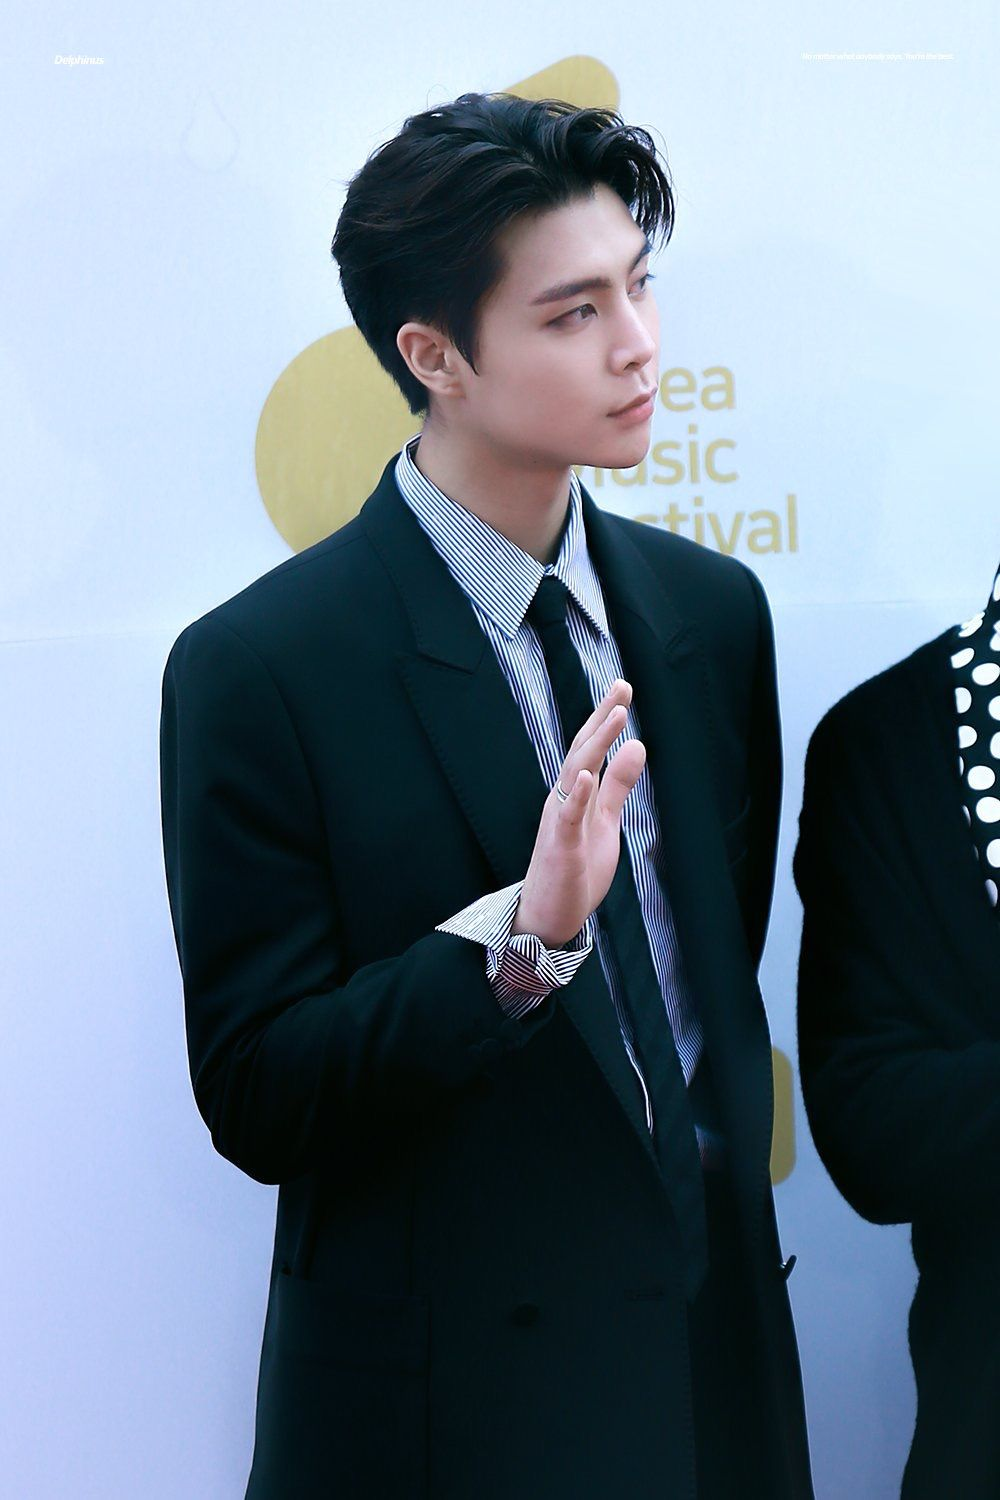 #NCT127 #JOHNNY | #NCT127 #JOHNNY ในปี 2019 | NCT Nct 127 ...